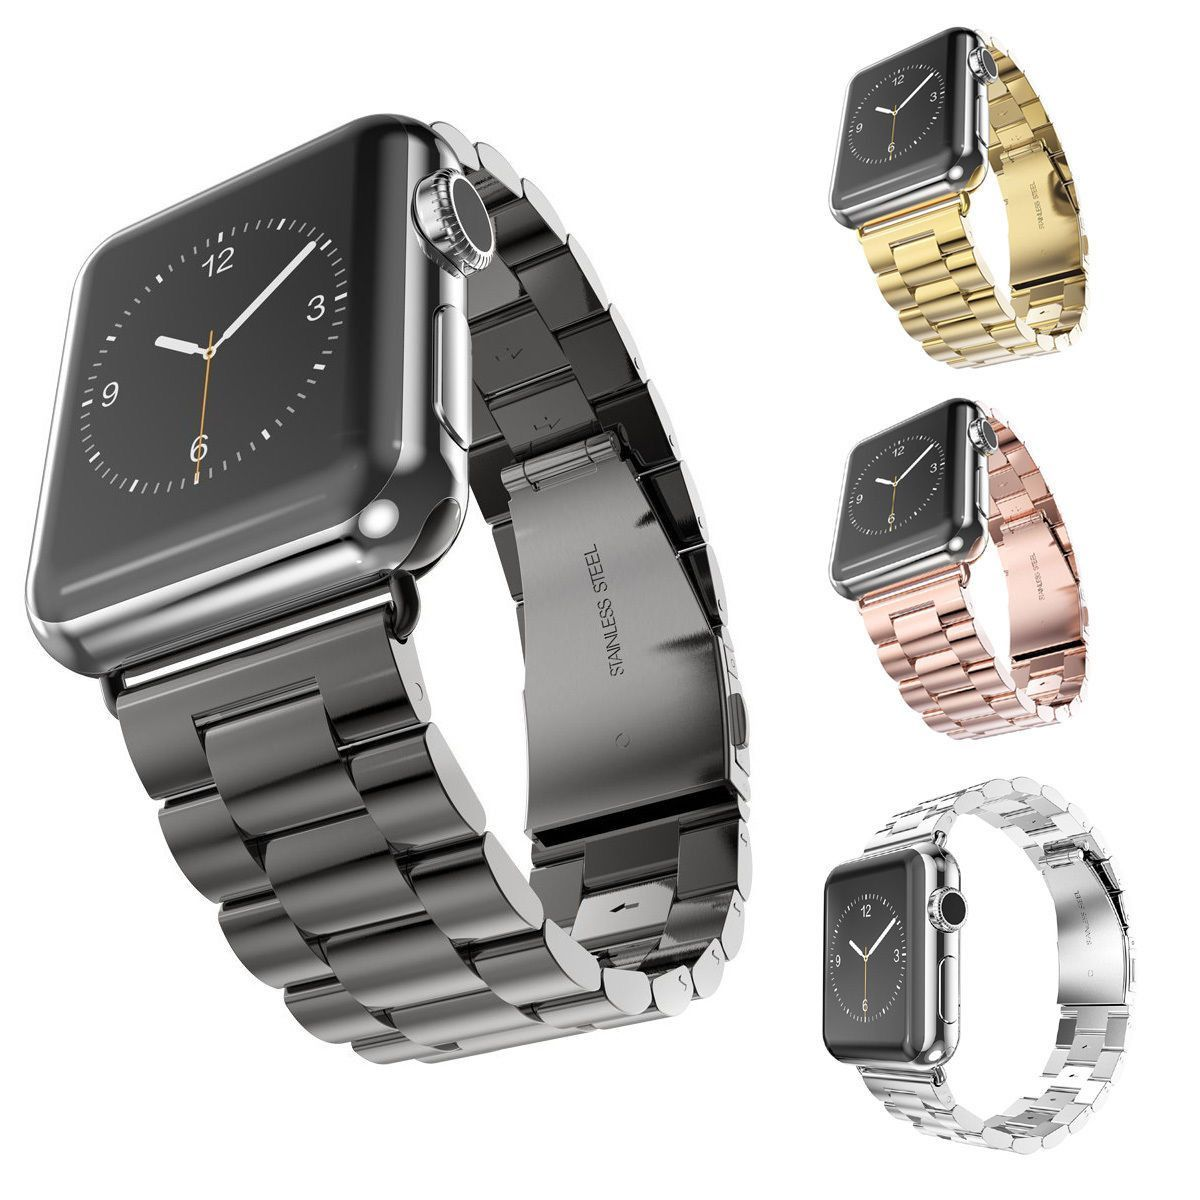 ac983377eb9d1 Stainless Steel Watch Band For iWatch Apple Watch Band Strap Link Bracelet  Accessories 38mm 42mm Classical Lock with Adapter